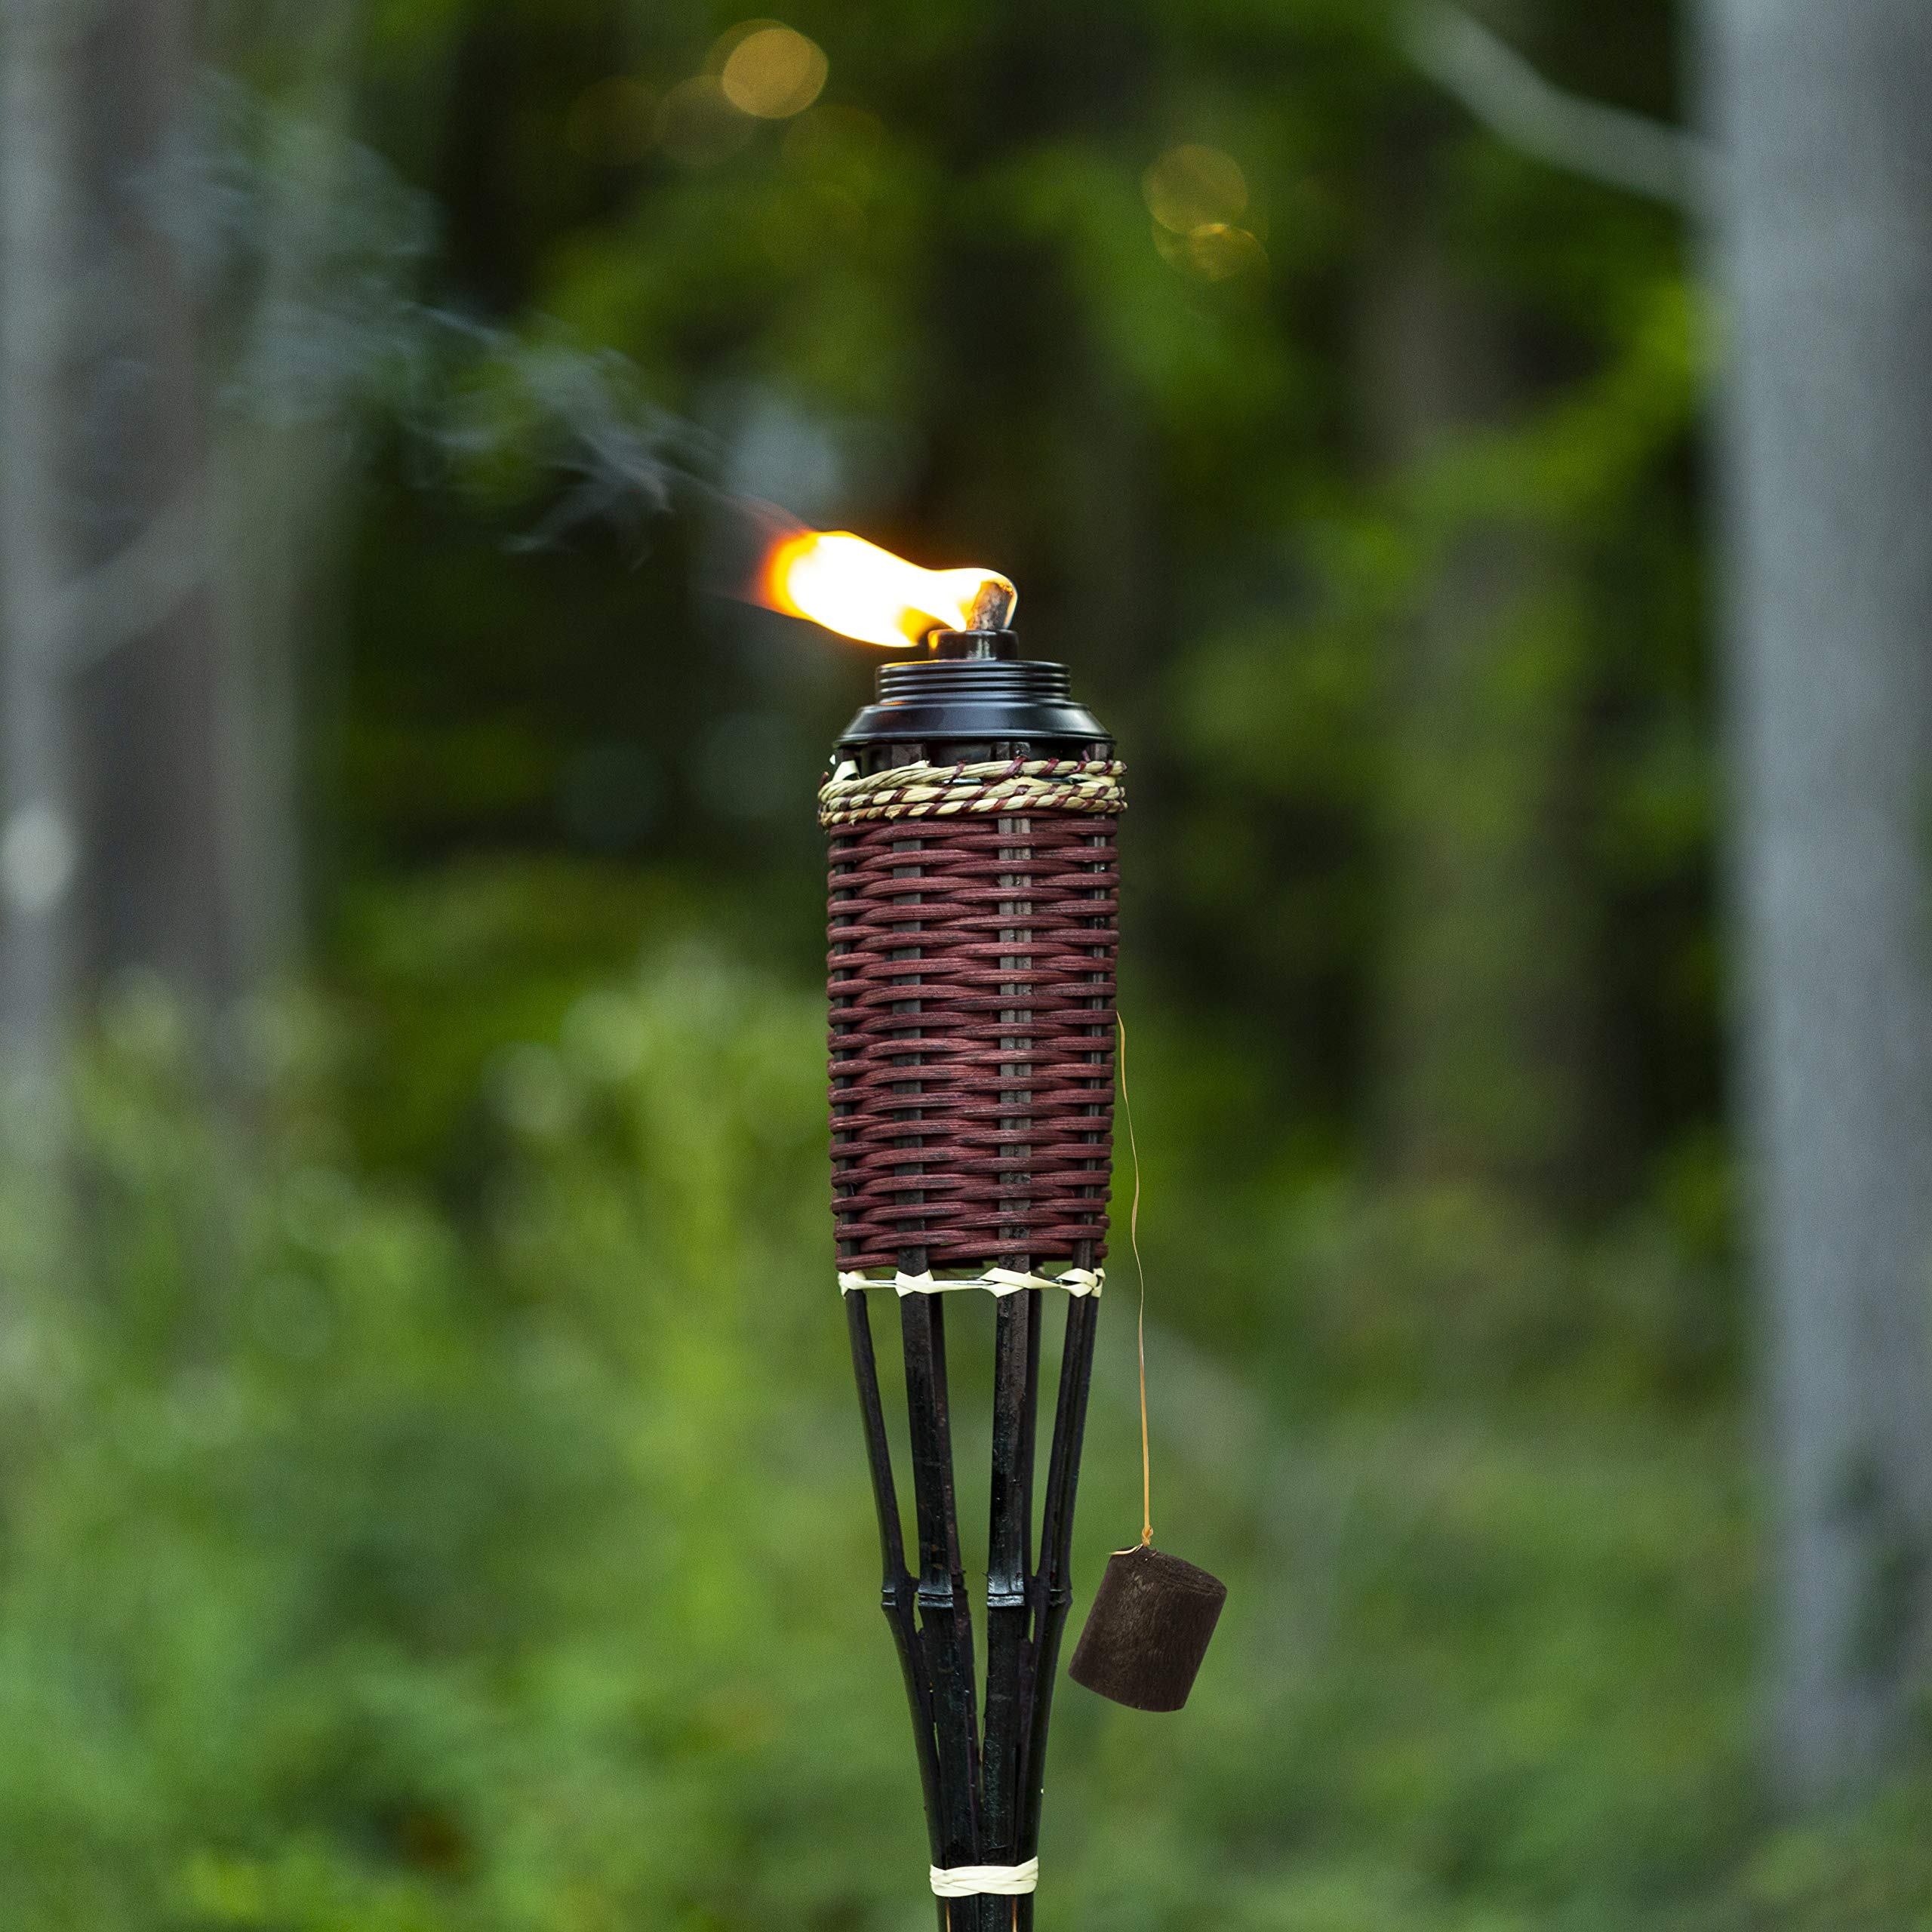 5 Star North Brown Weave Bamboo Torches; Decorative Torches; Fiberglass Wicks; Extra-Large (16oz) Metal Canisters for Longer Lasting Burn; Stands 59'' Tall (12 Pack) by 5 Star North (Image #5)